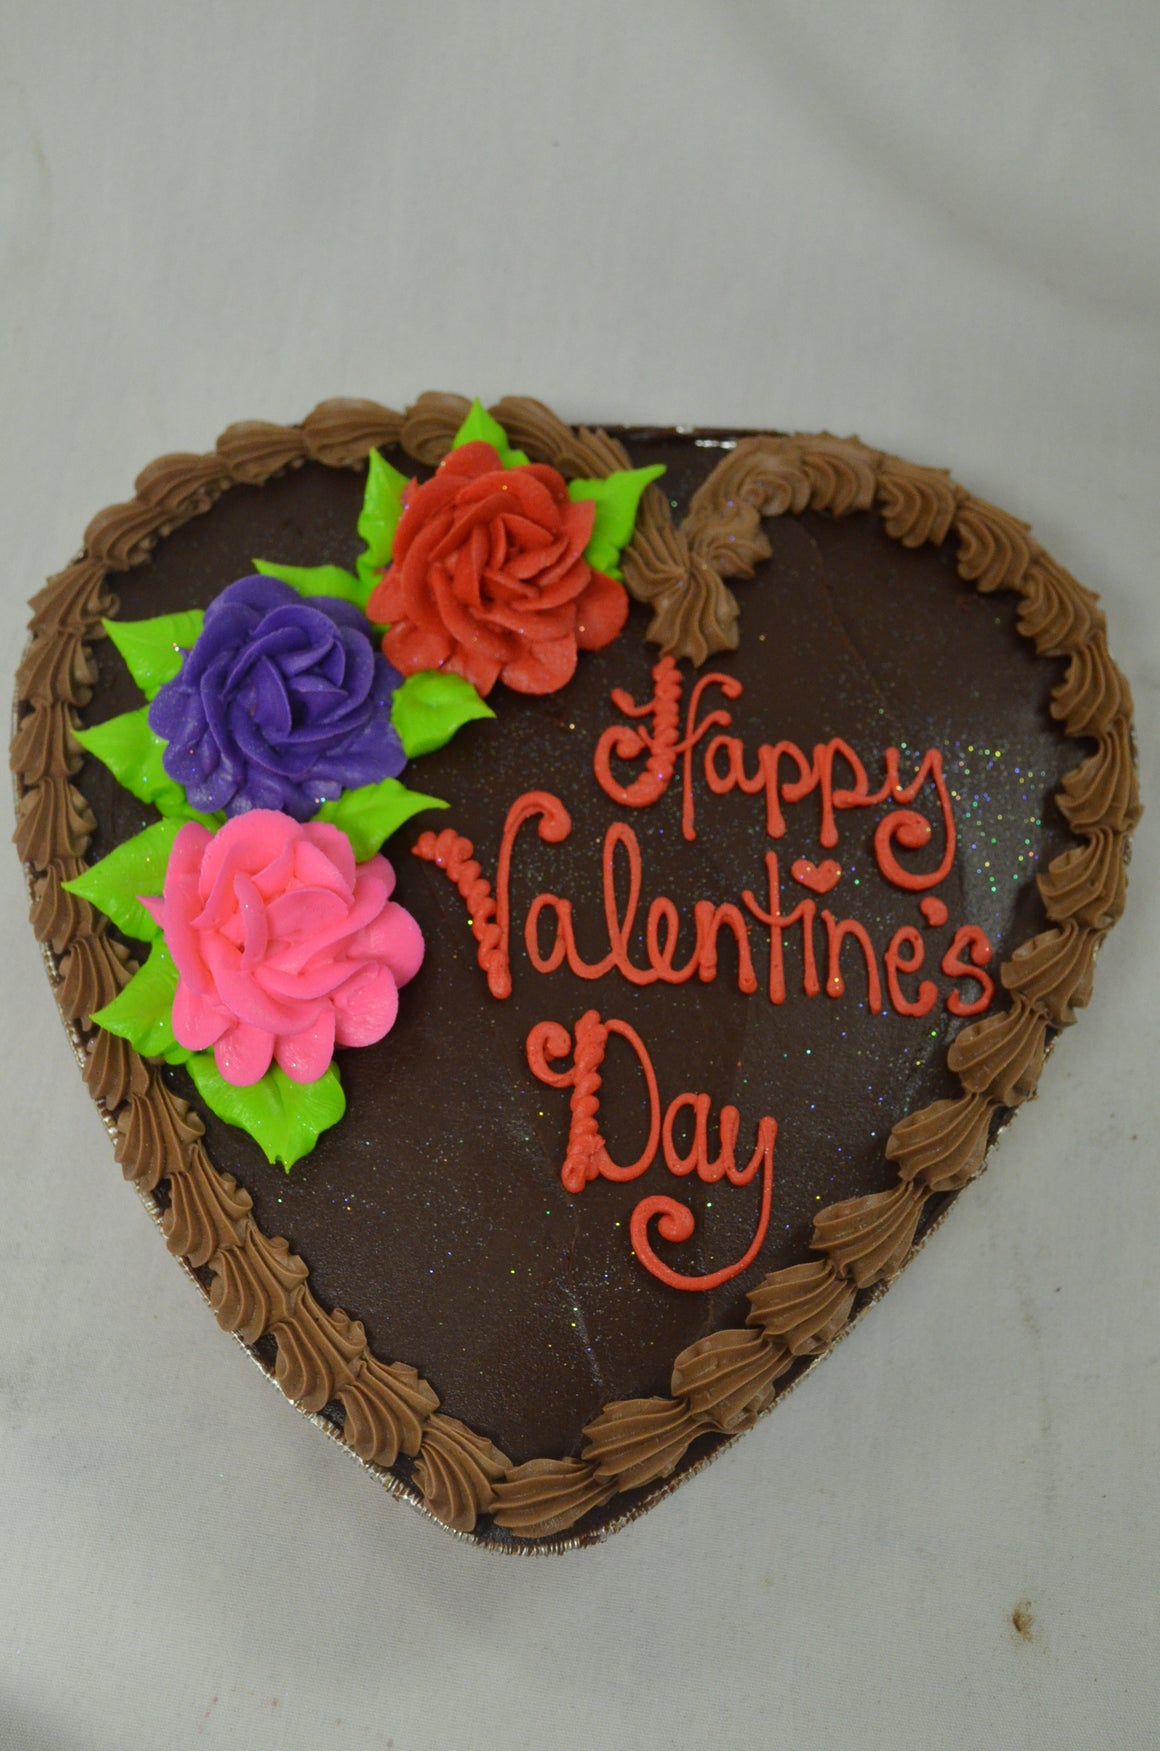 Valentine's Day Decorating Event, Thurs. Feb. 13th 3:30-5:00pm